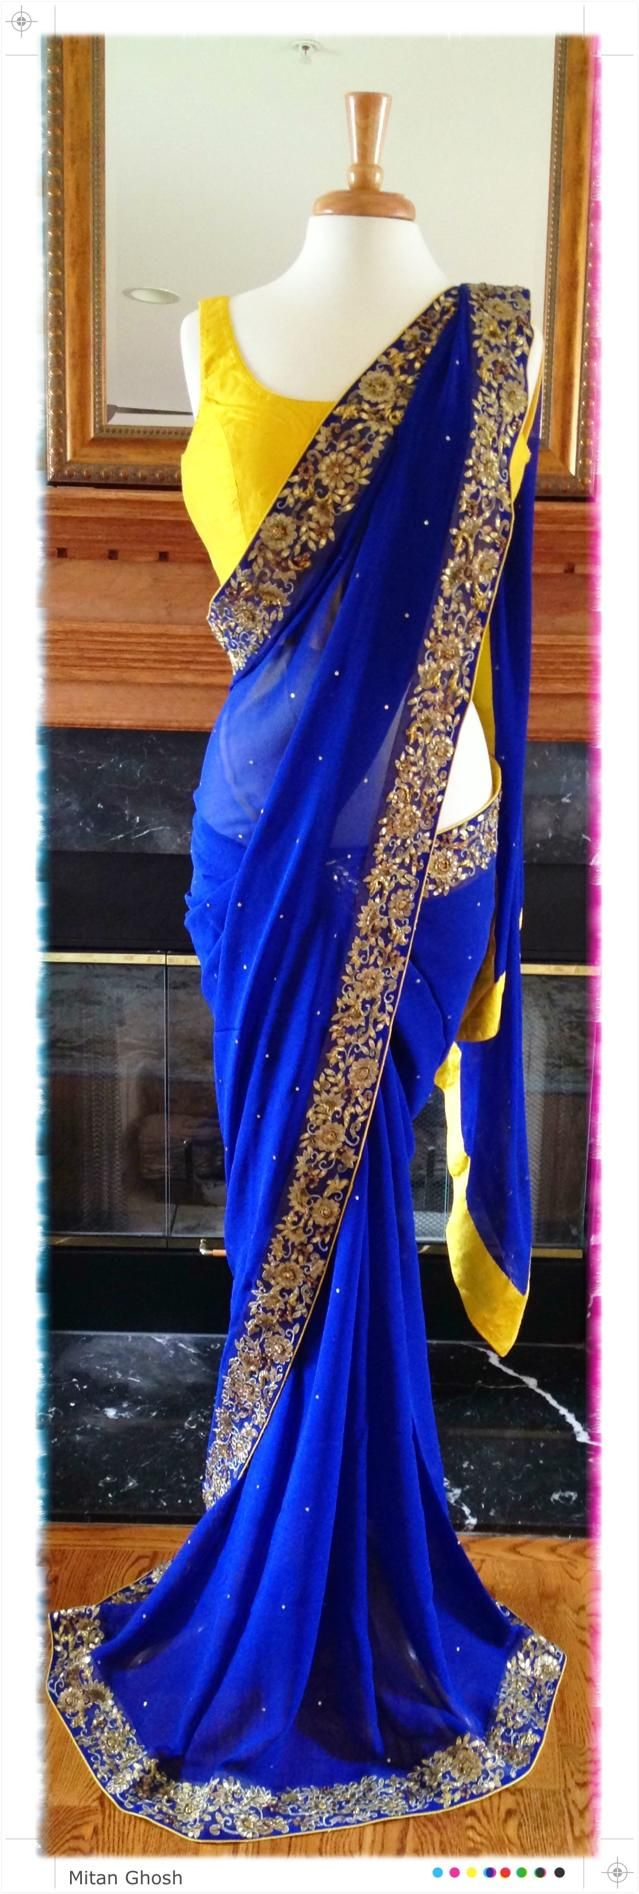 A Georgette Saree by Mitan Ghosh